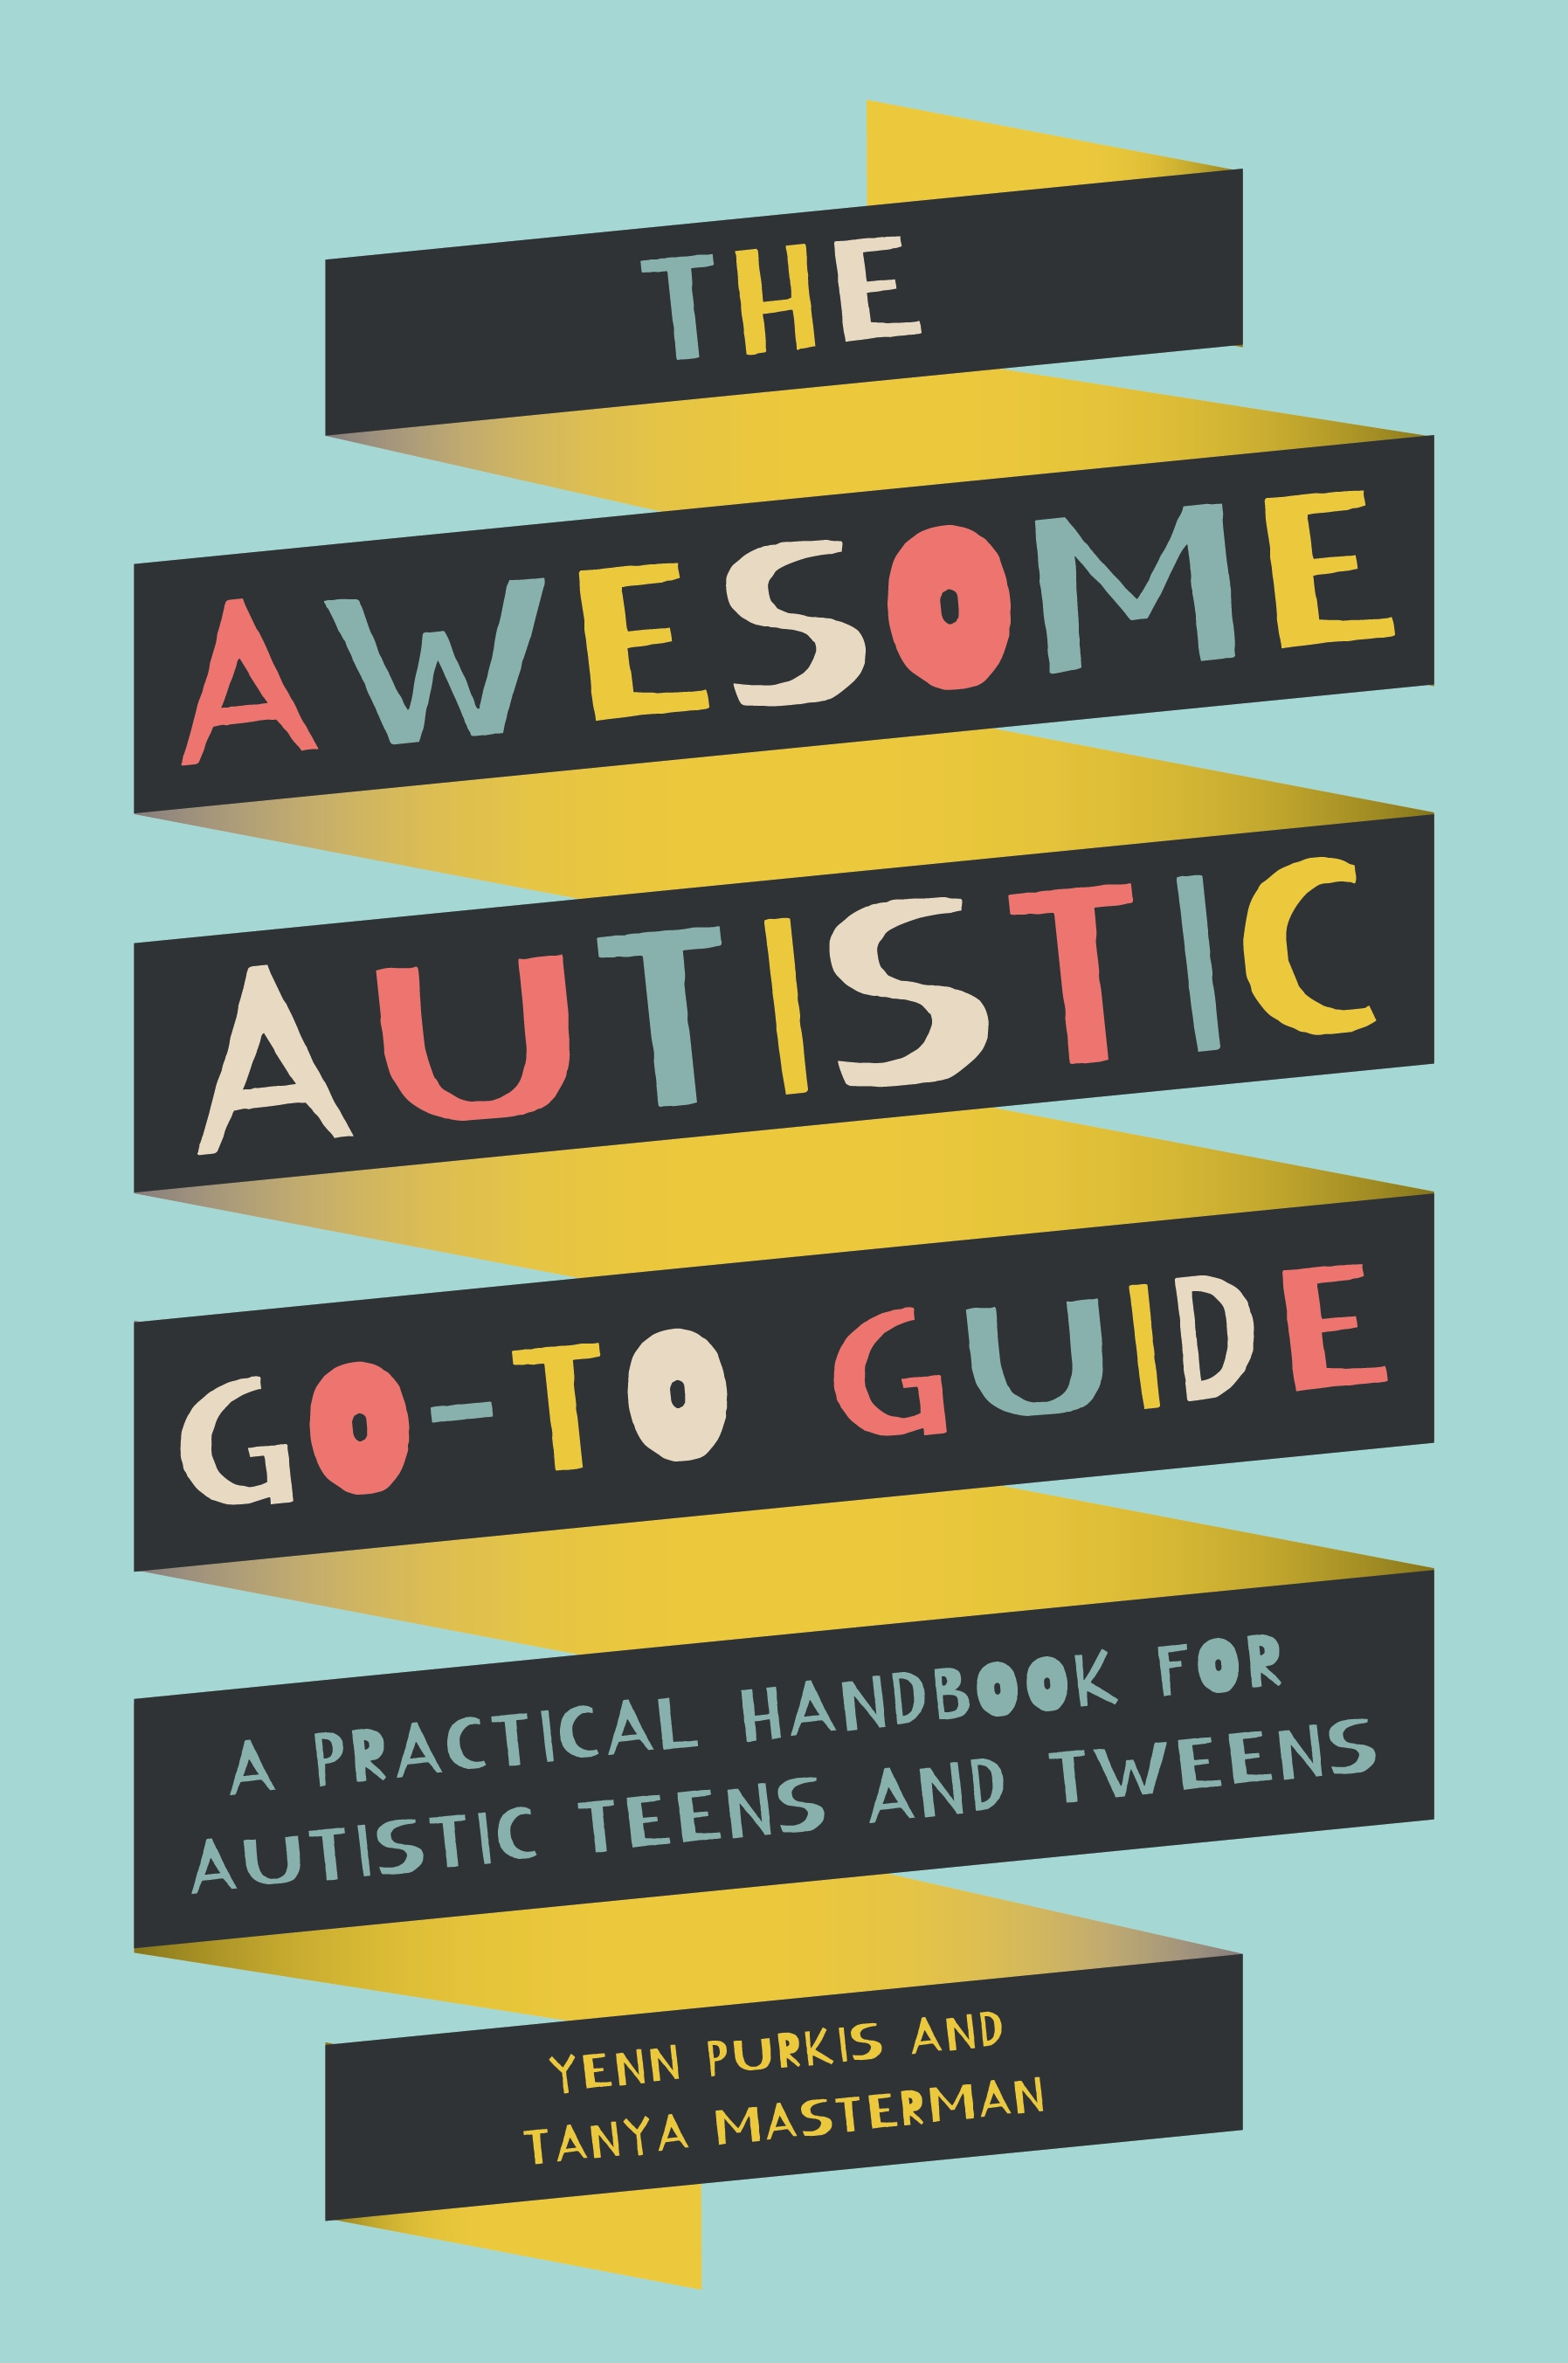 The Awesome Autistic Go-To Guide A Practical Handbook for Autistic Teens and Tweens